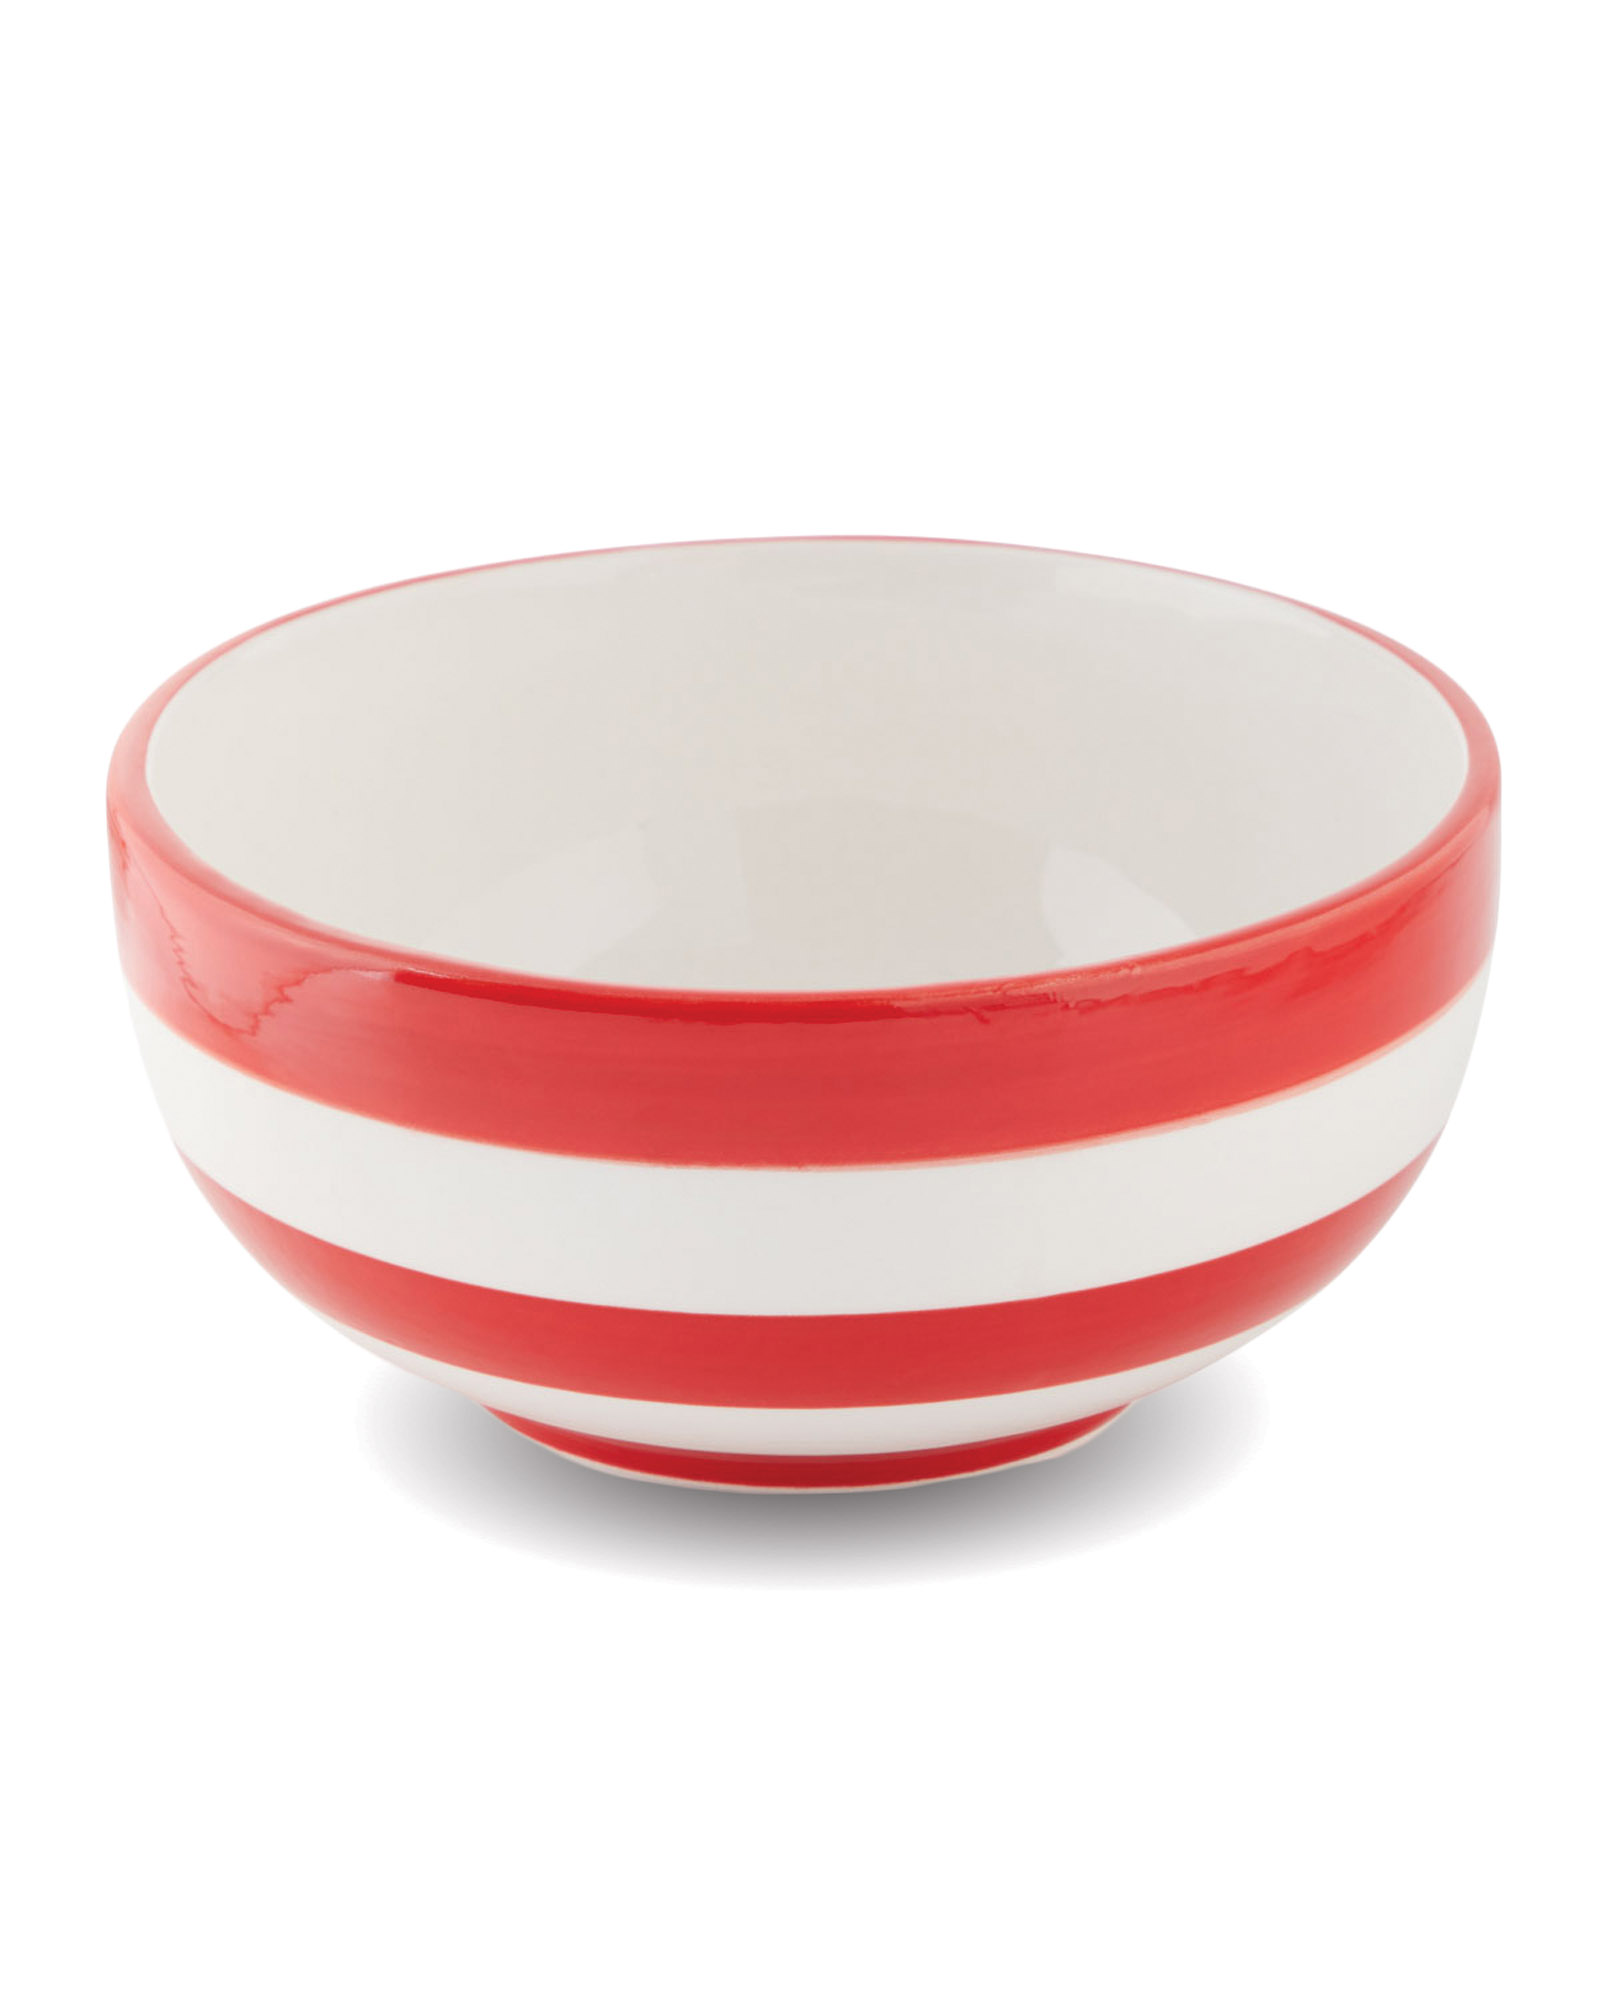 Stars and Stripes Bowl from Horchow